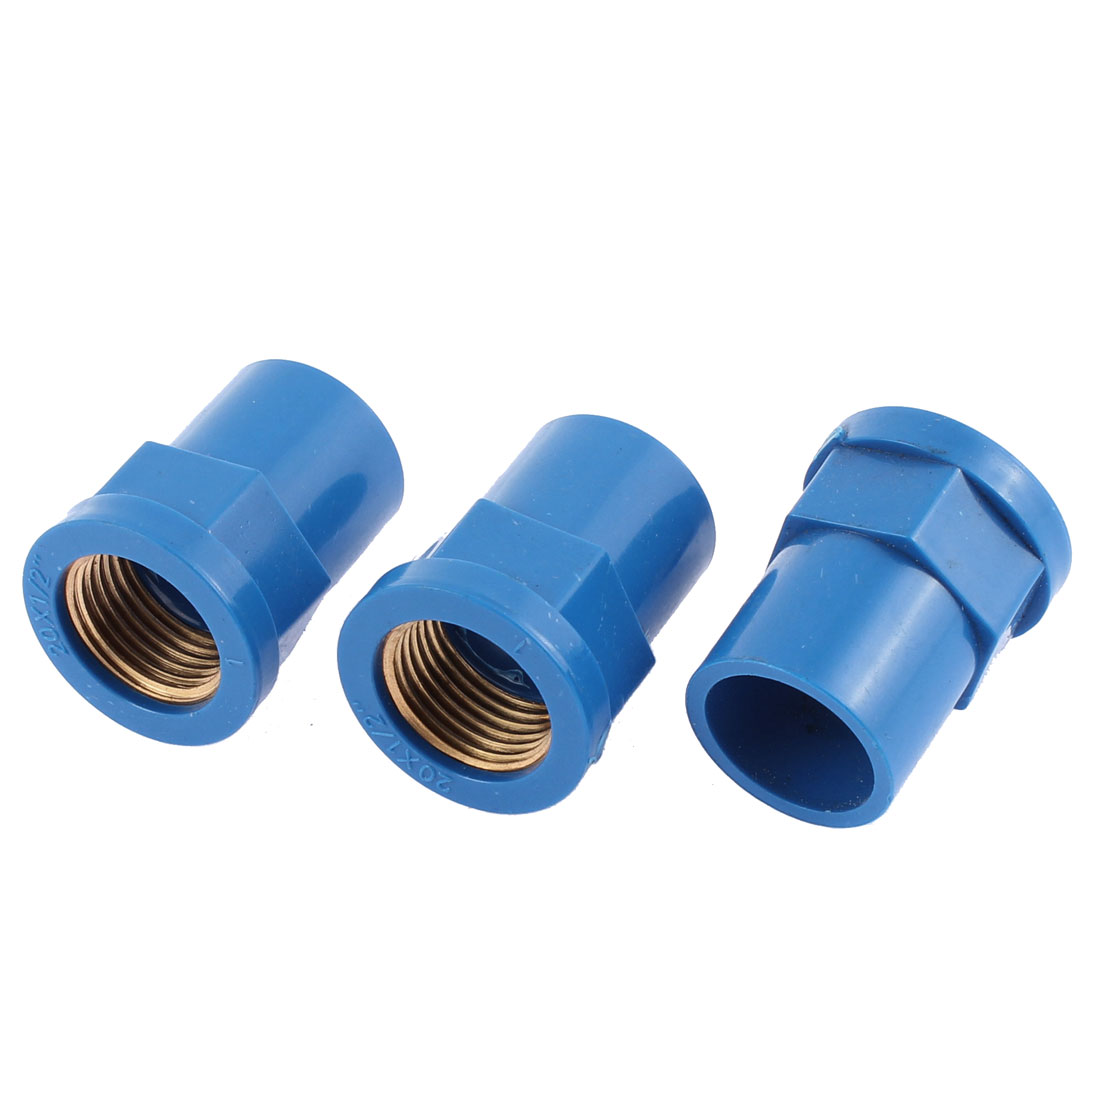 Straight Type 1/2BSP Female Thread Pipe Connector Cooupler 3PCS